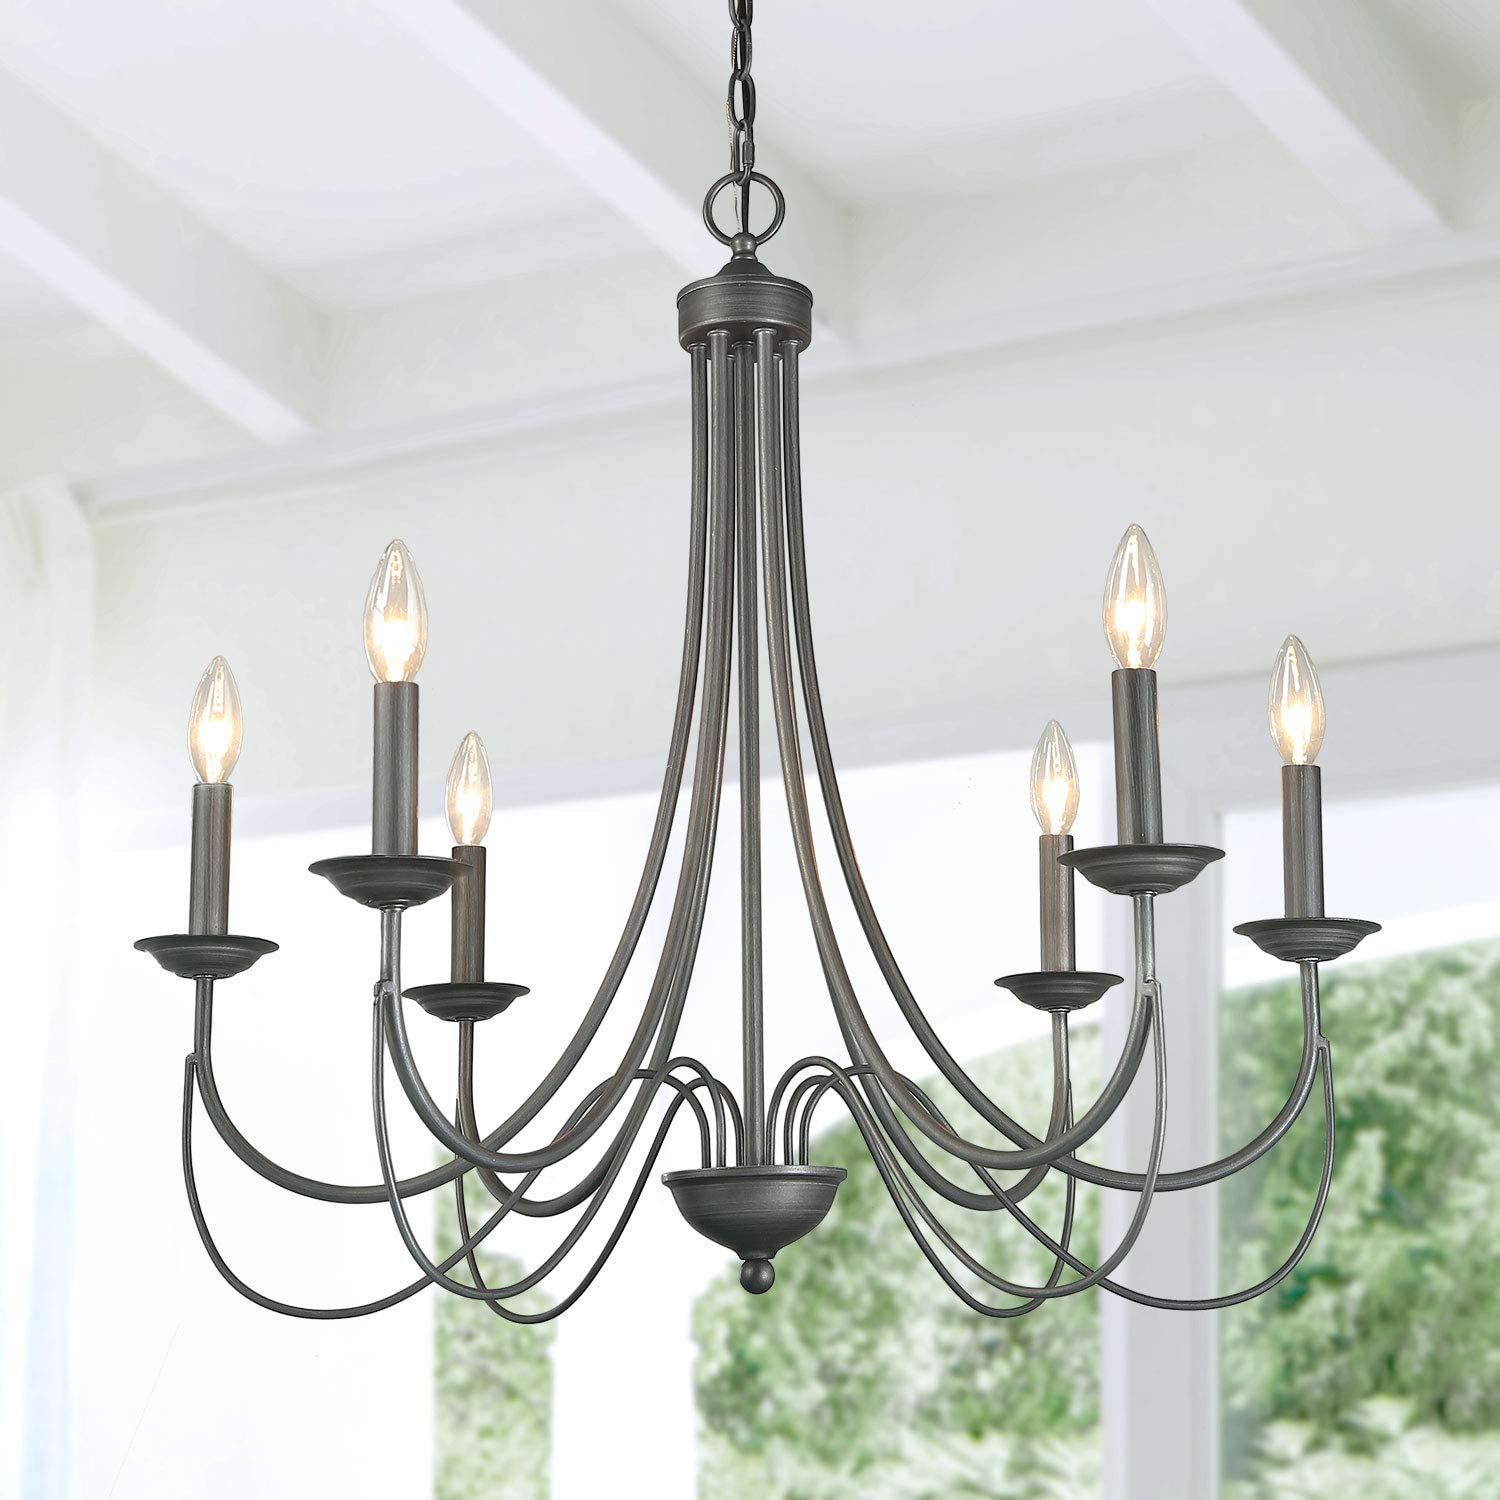 Log Barn French Country Chandelier Modern Farmhouse Lighting Style In Brushed Rustic Dark Grey Kitchen Island Pendant For Dining Room Bedroom Amazon Com